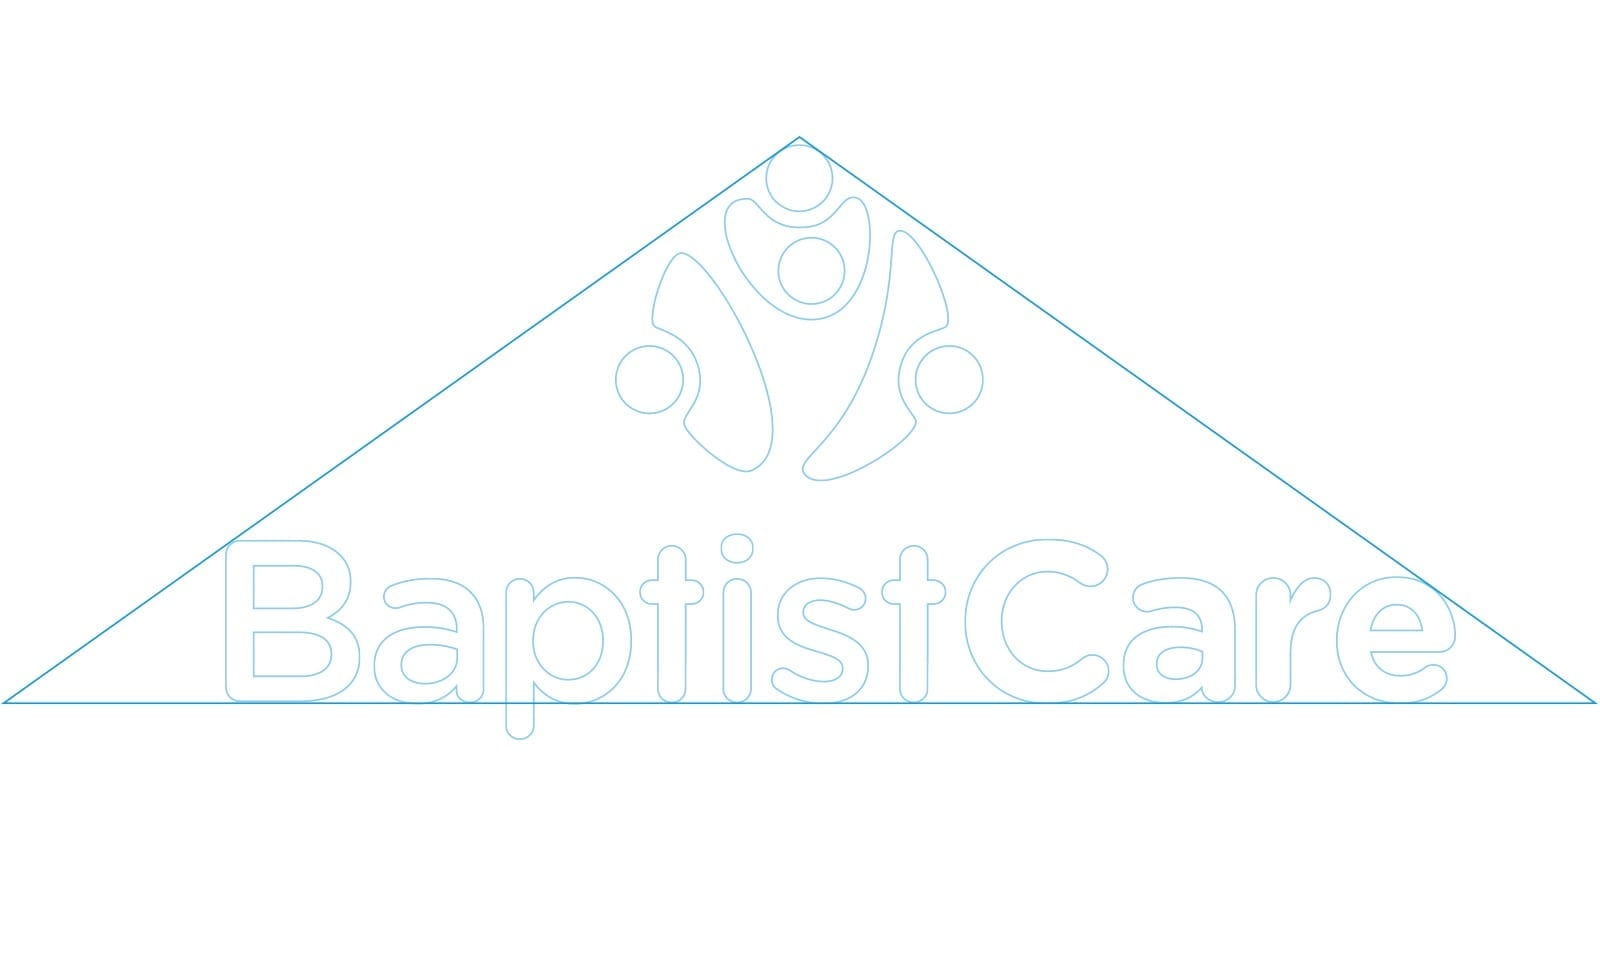 BaptistCare masterbrand brand structure.